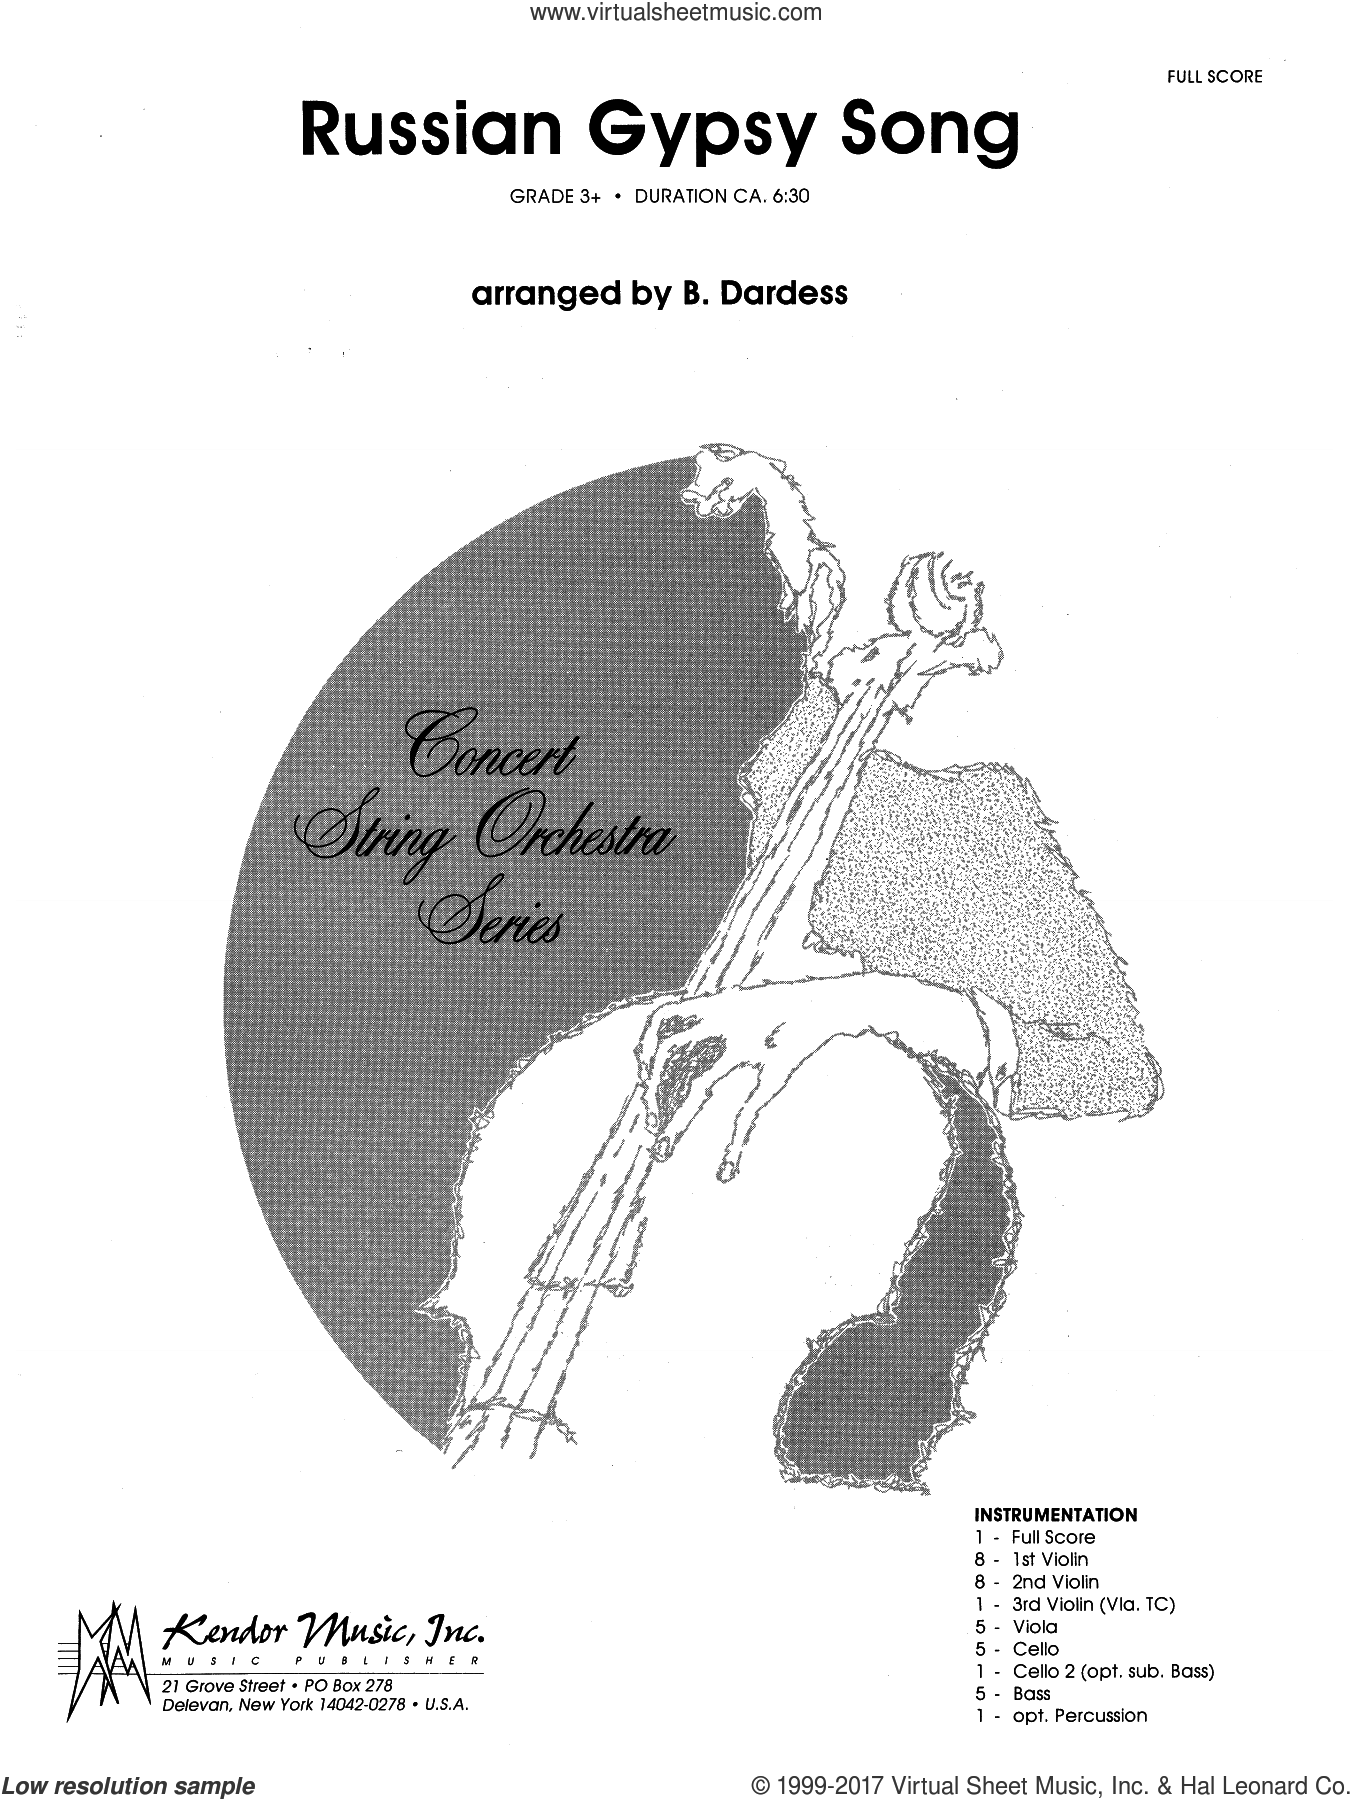 Russian Gypsy Song (COMPLETE) sheet music for orchestra by Betty Dardess, intermediate skill level